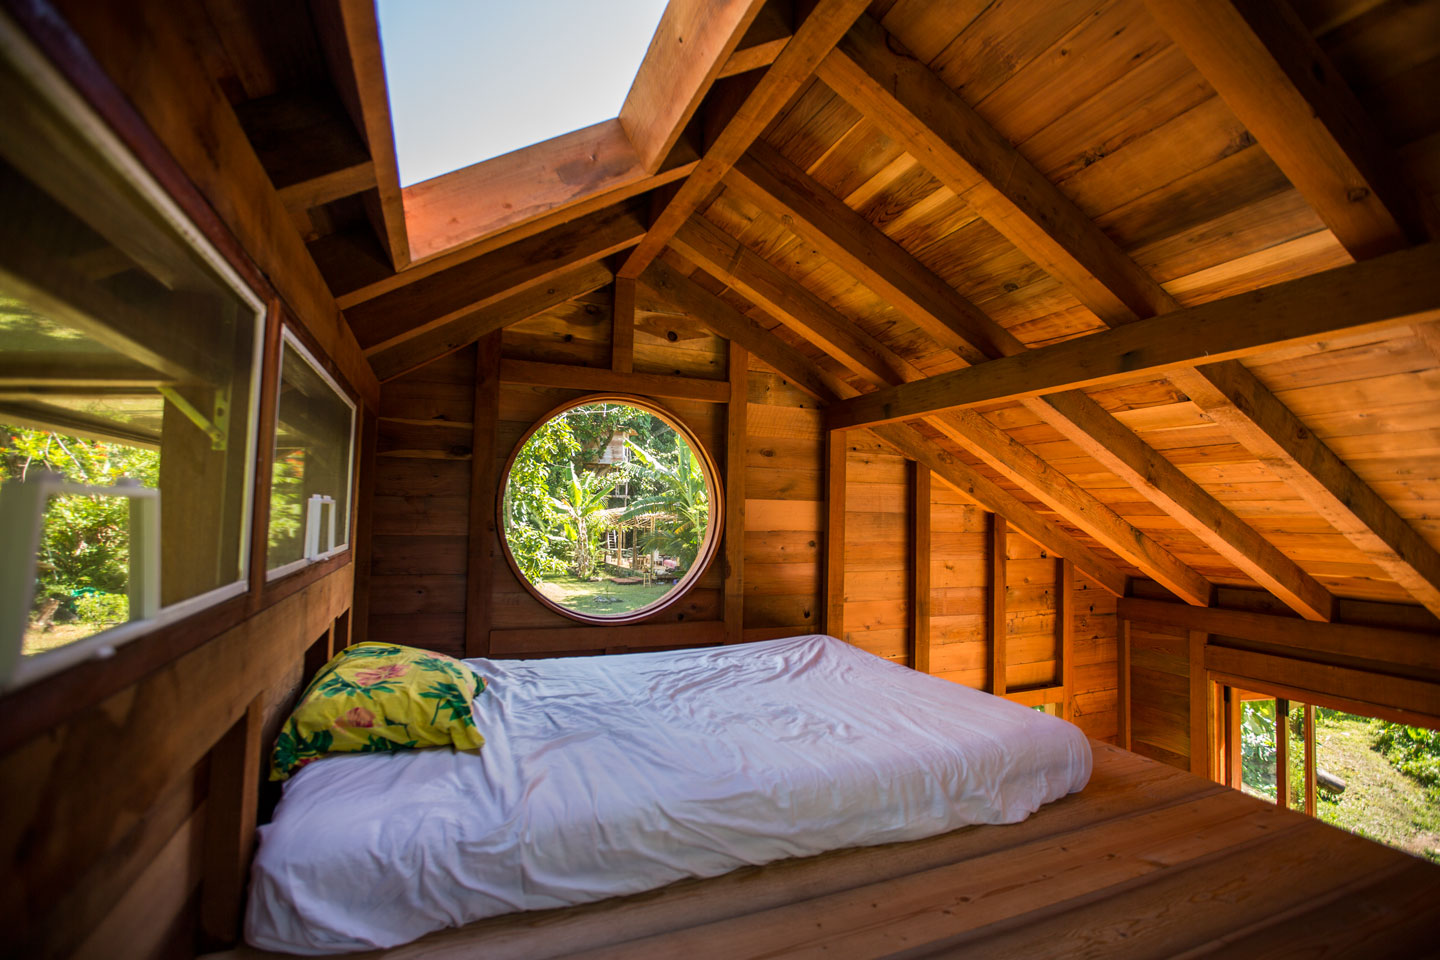 Jay Nelsons New Tiny House in Hawaii The Shelter Blog